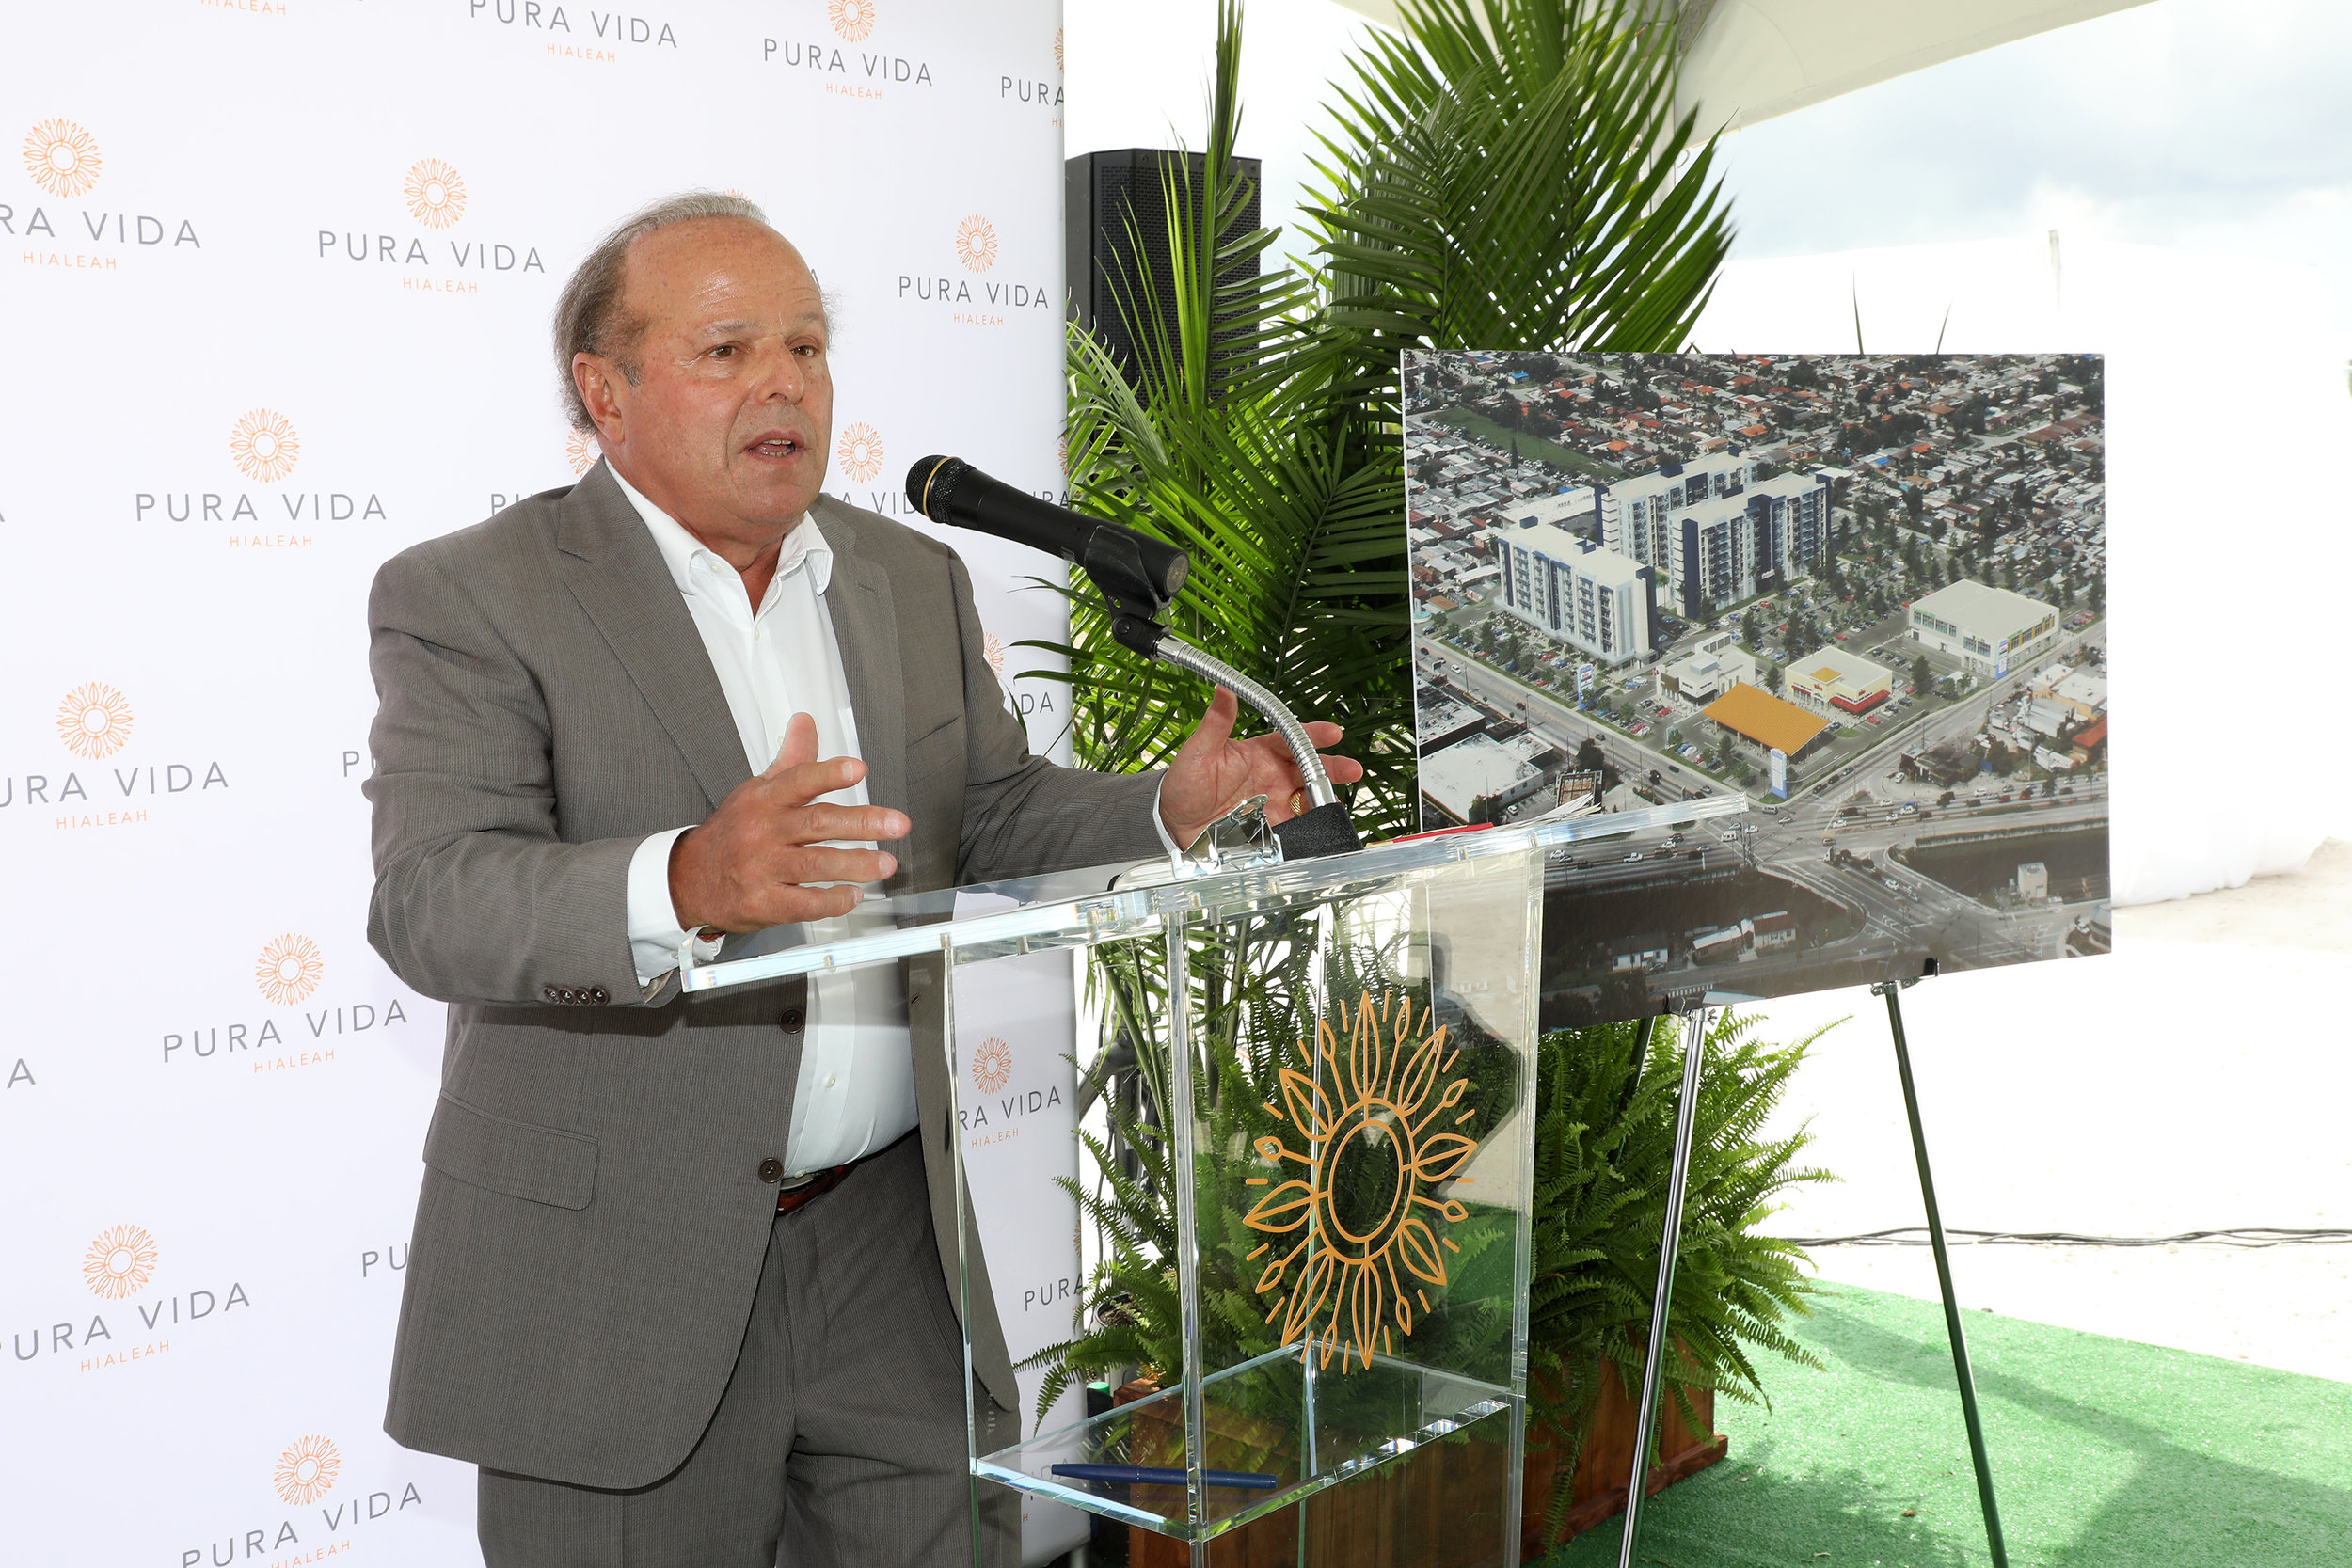 Michael Wohl, Principal of Coral Rock Development Group, addresses the crowd at the groundbreaking for Pura Vida Hialeah